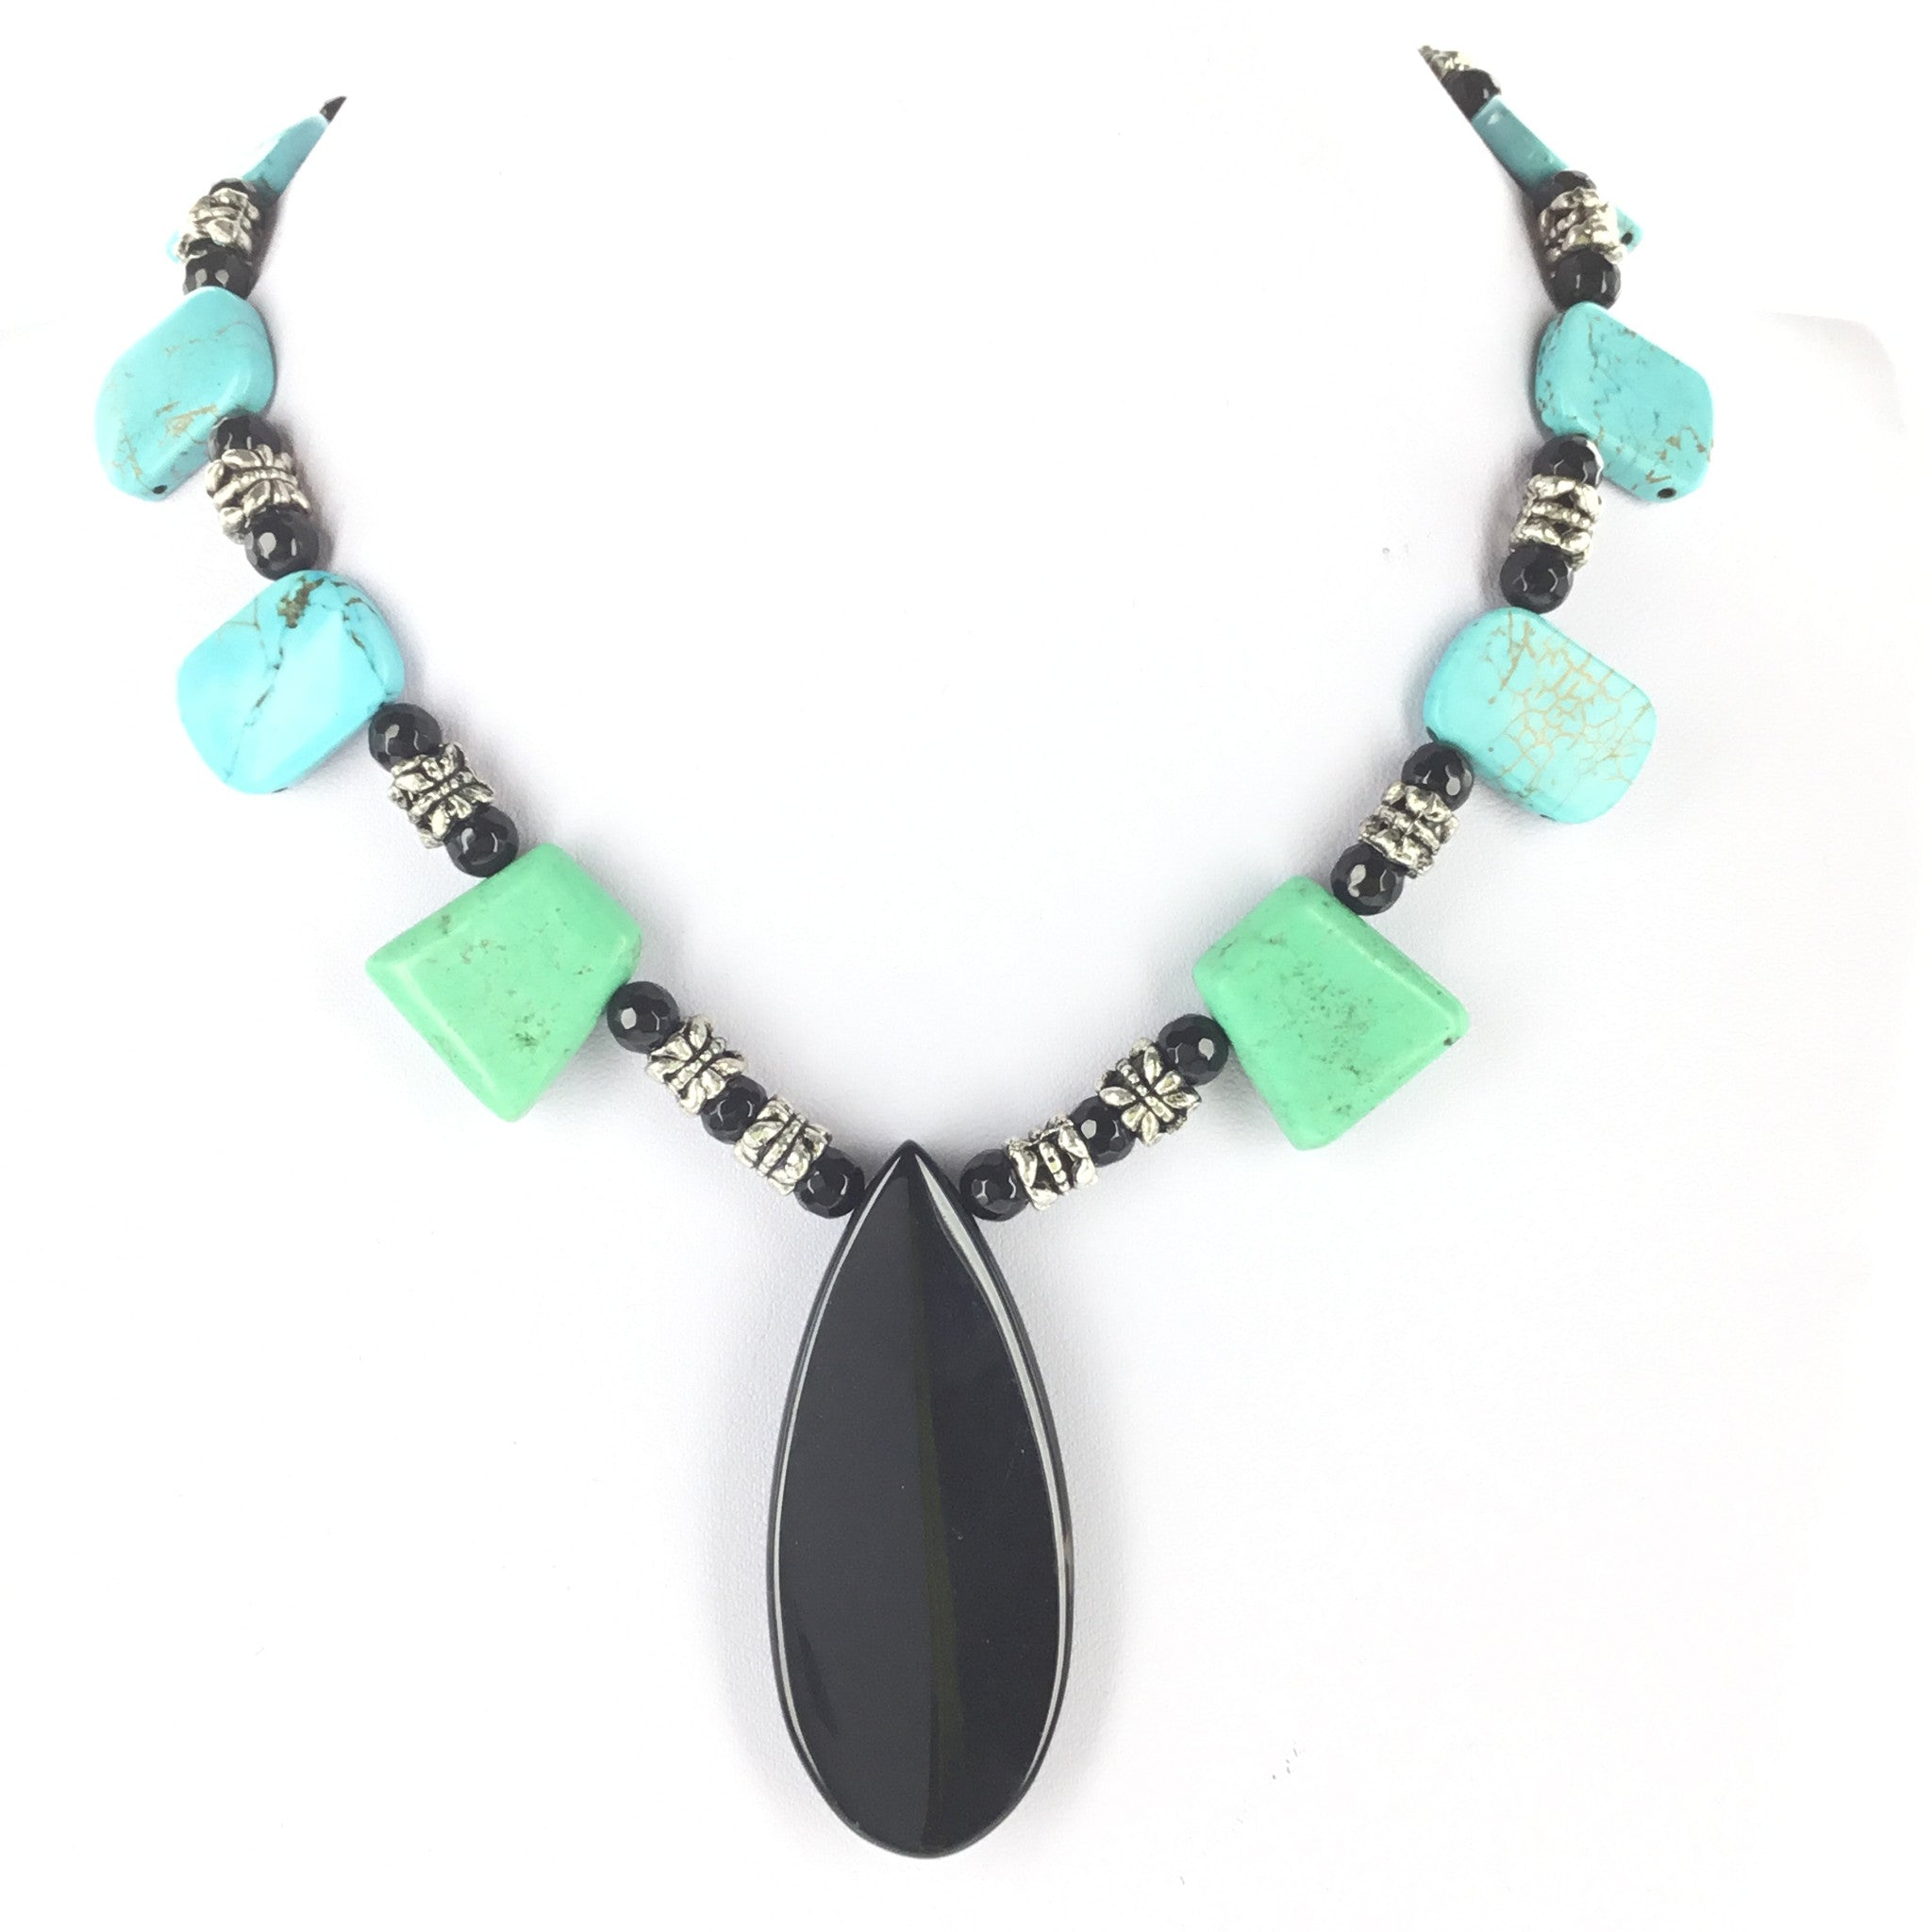 Turquoise and Black Agate Necklace - Real Chic Boutique  - 2